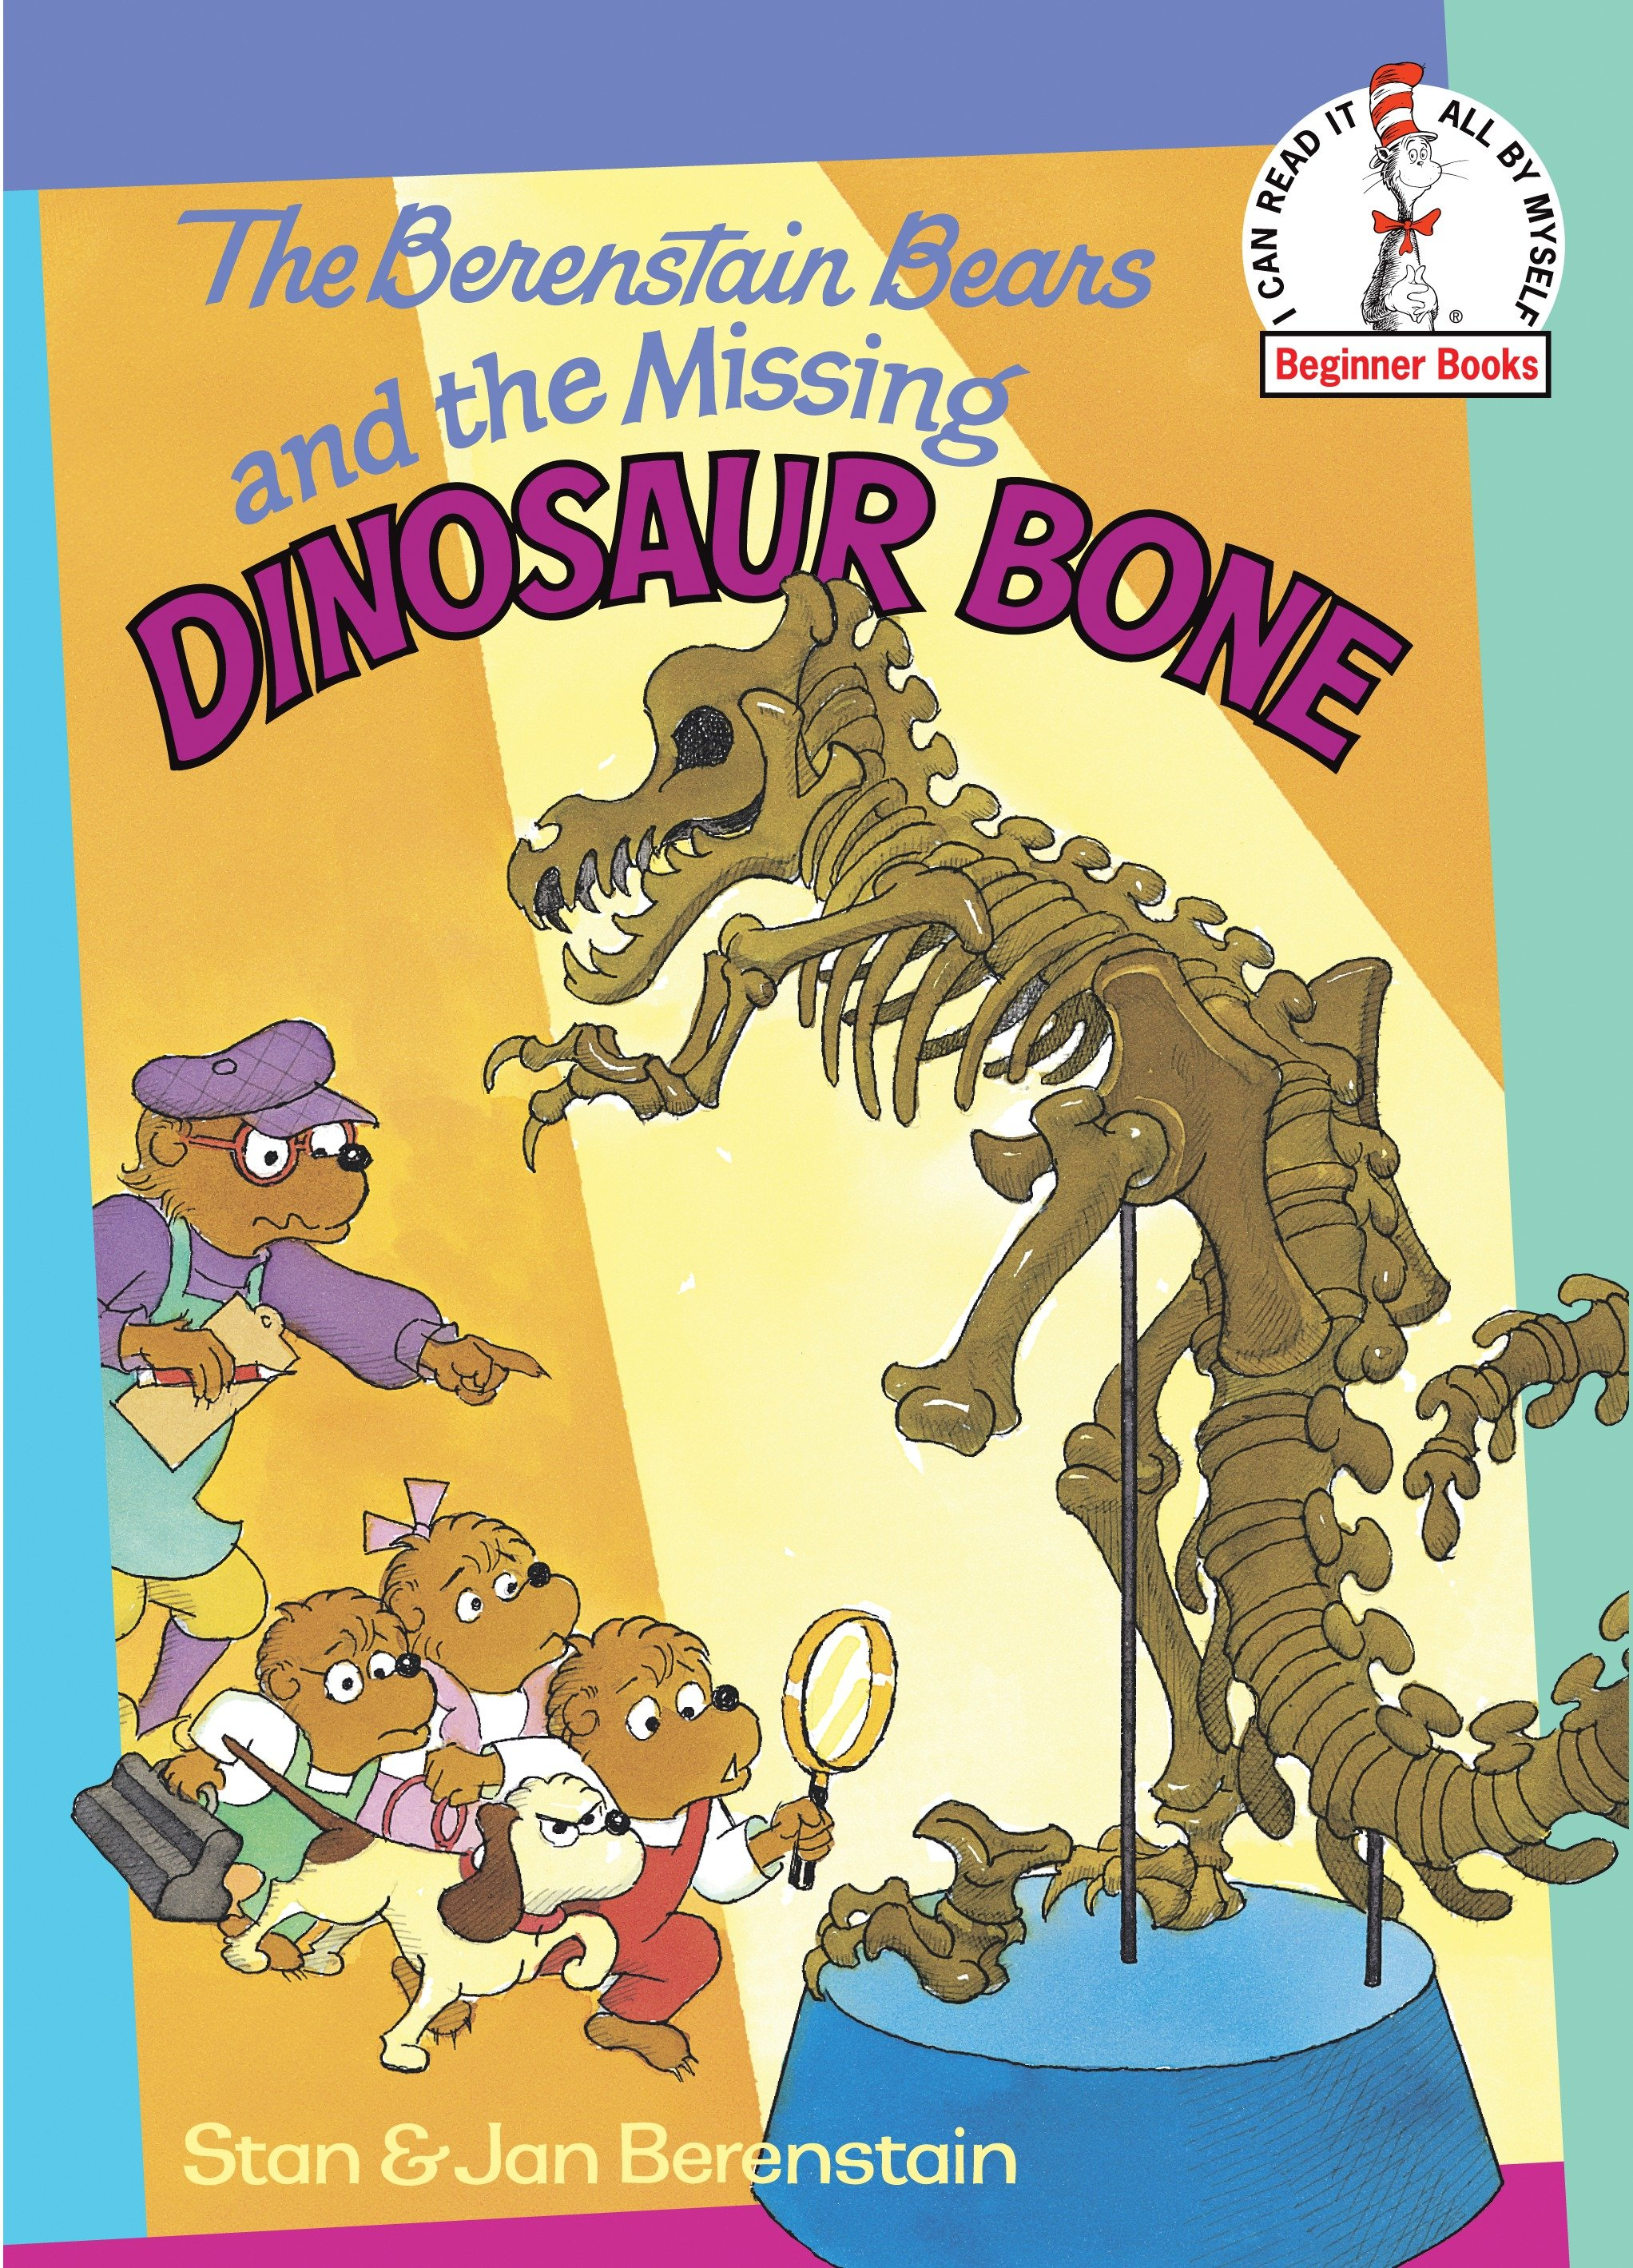 The Berenstain Bears and the missing dinosaur bone cover image